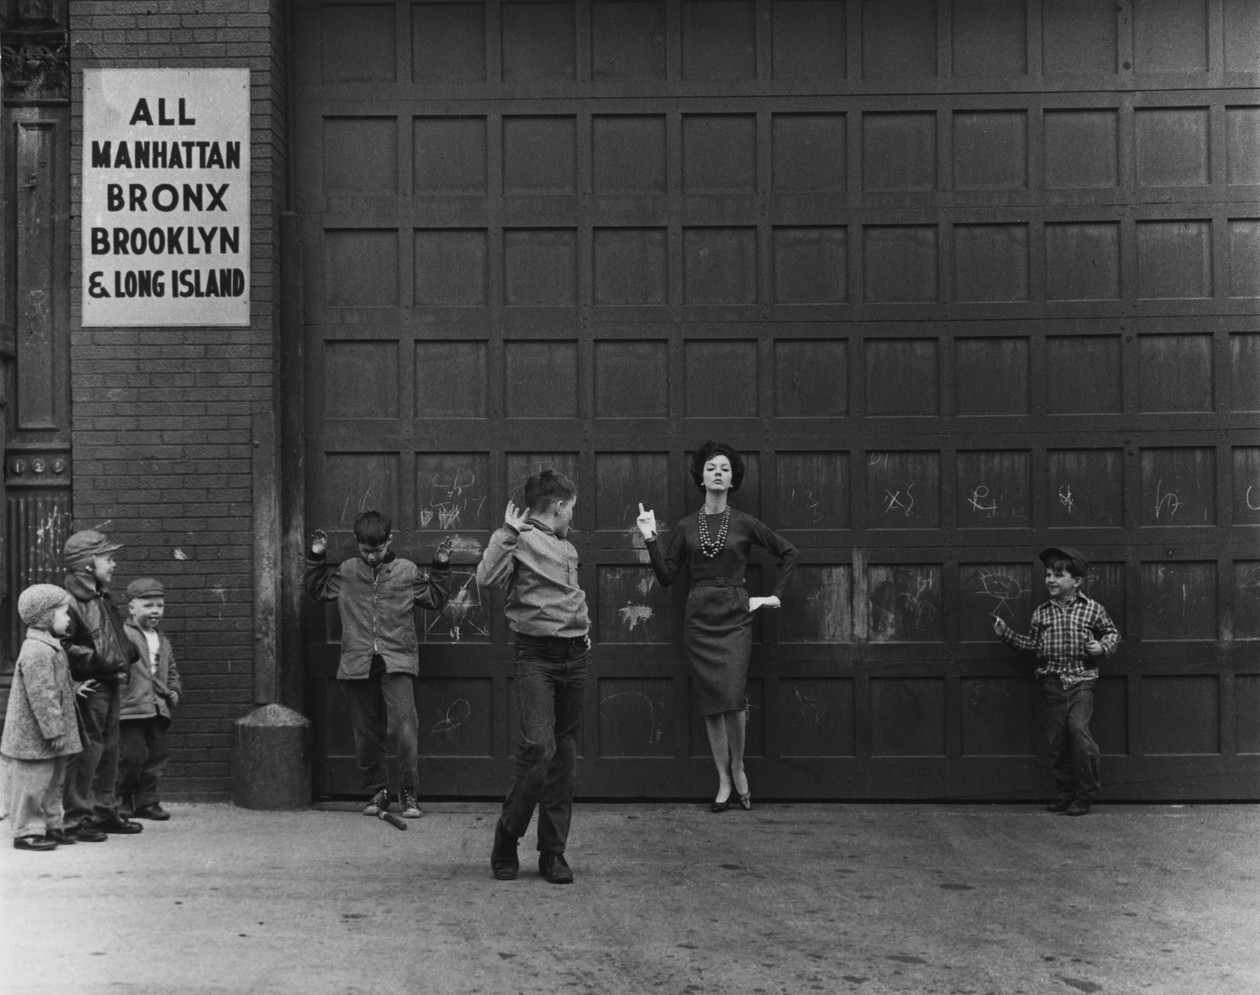 Judy and the Boys, New York City (1961) by Lida Moser